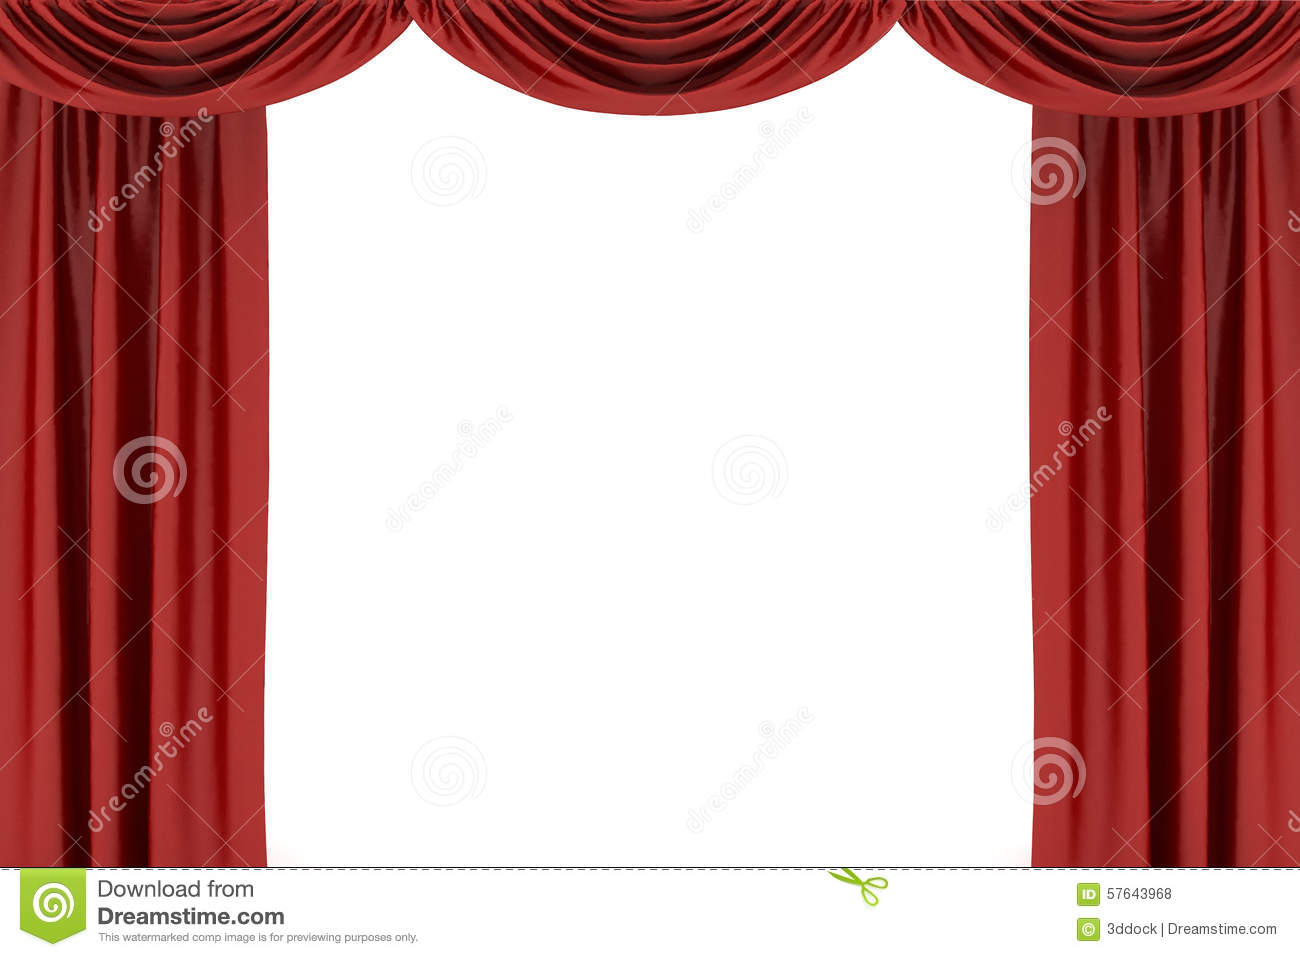 Red silk stage curtain on theater